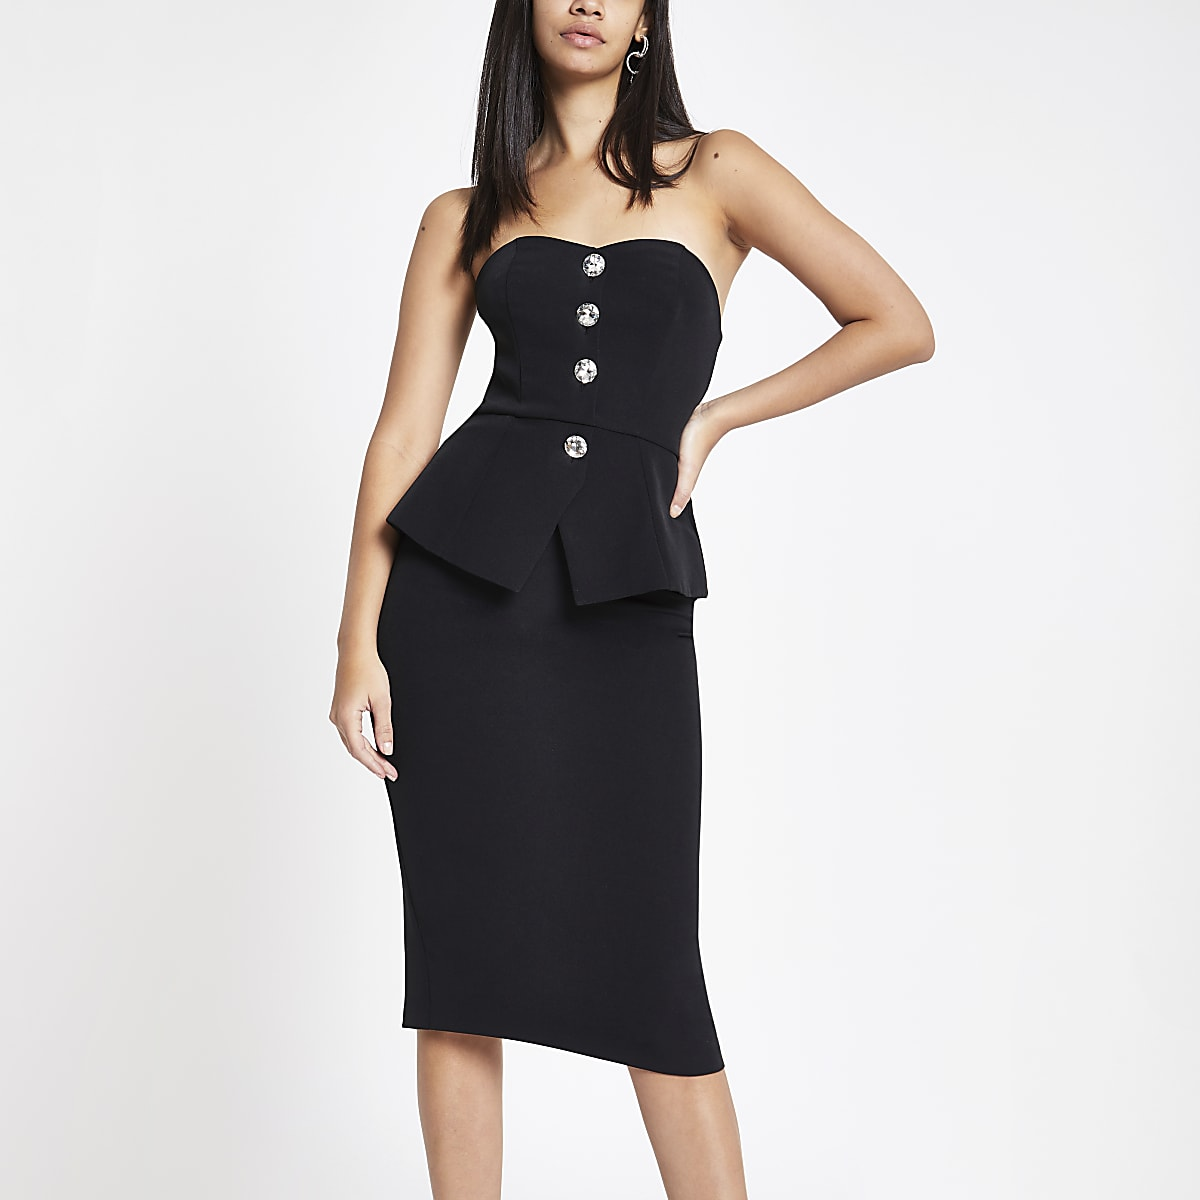 Black peplum midi bodycon dress